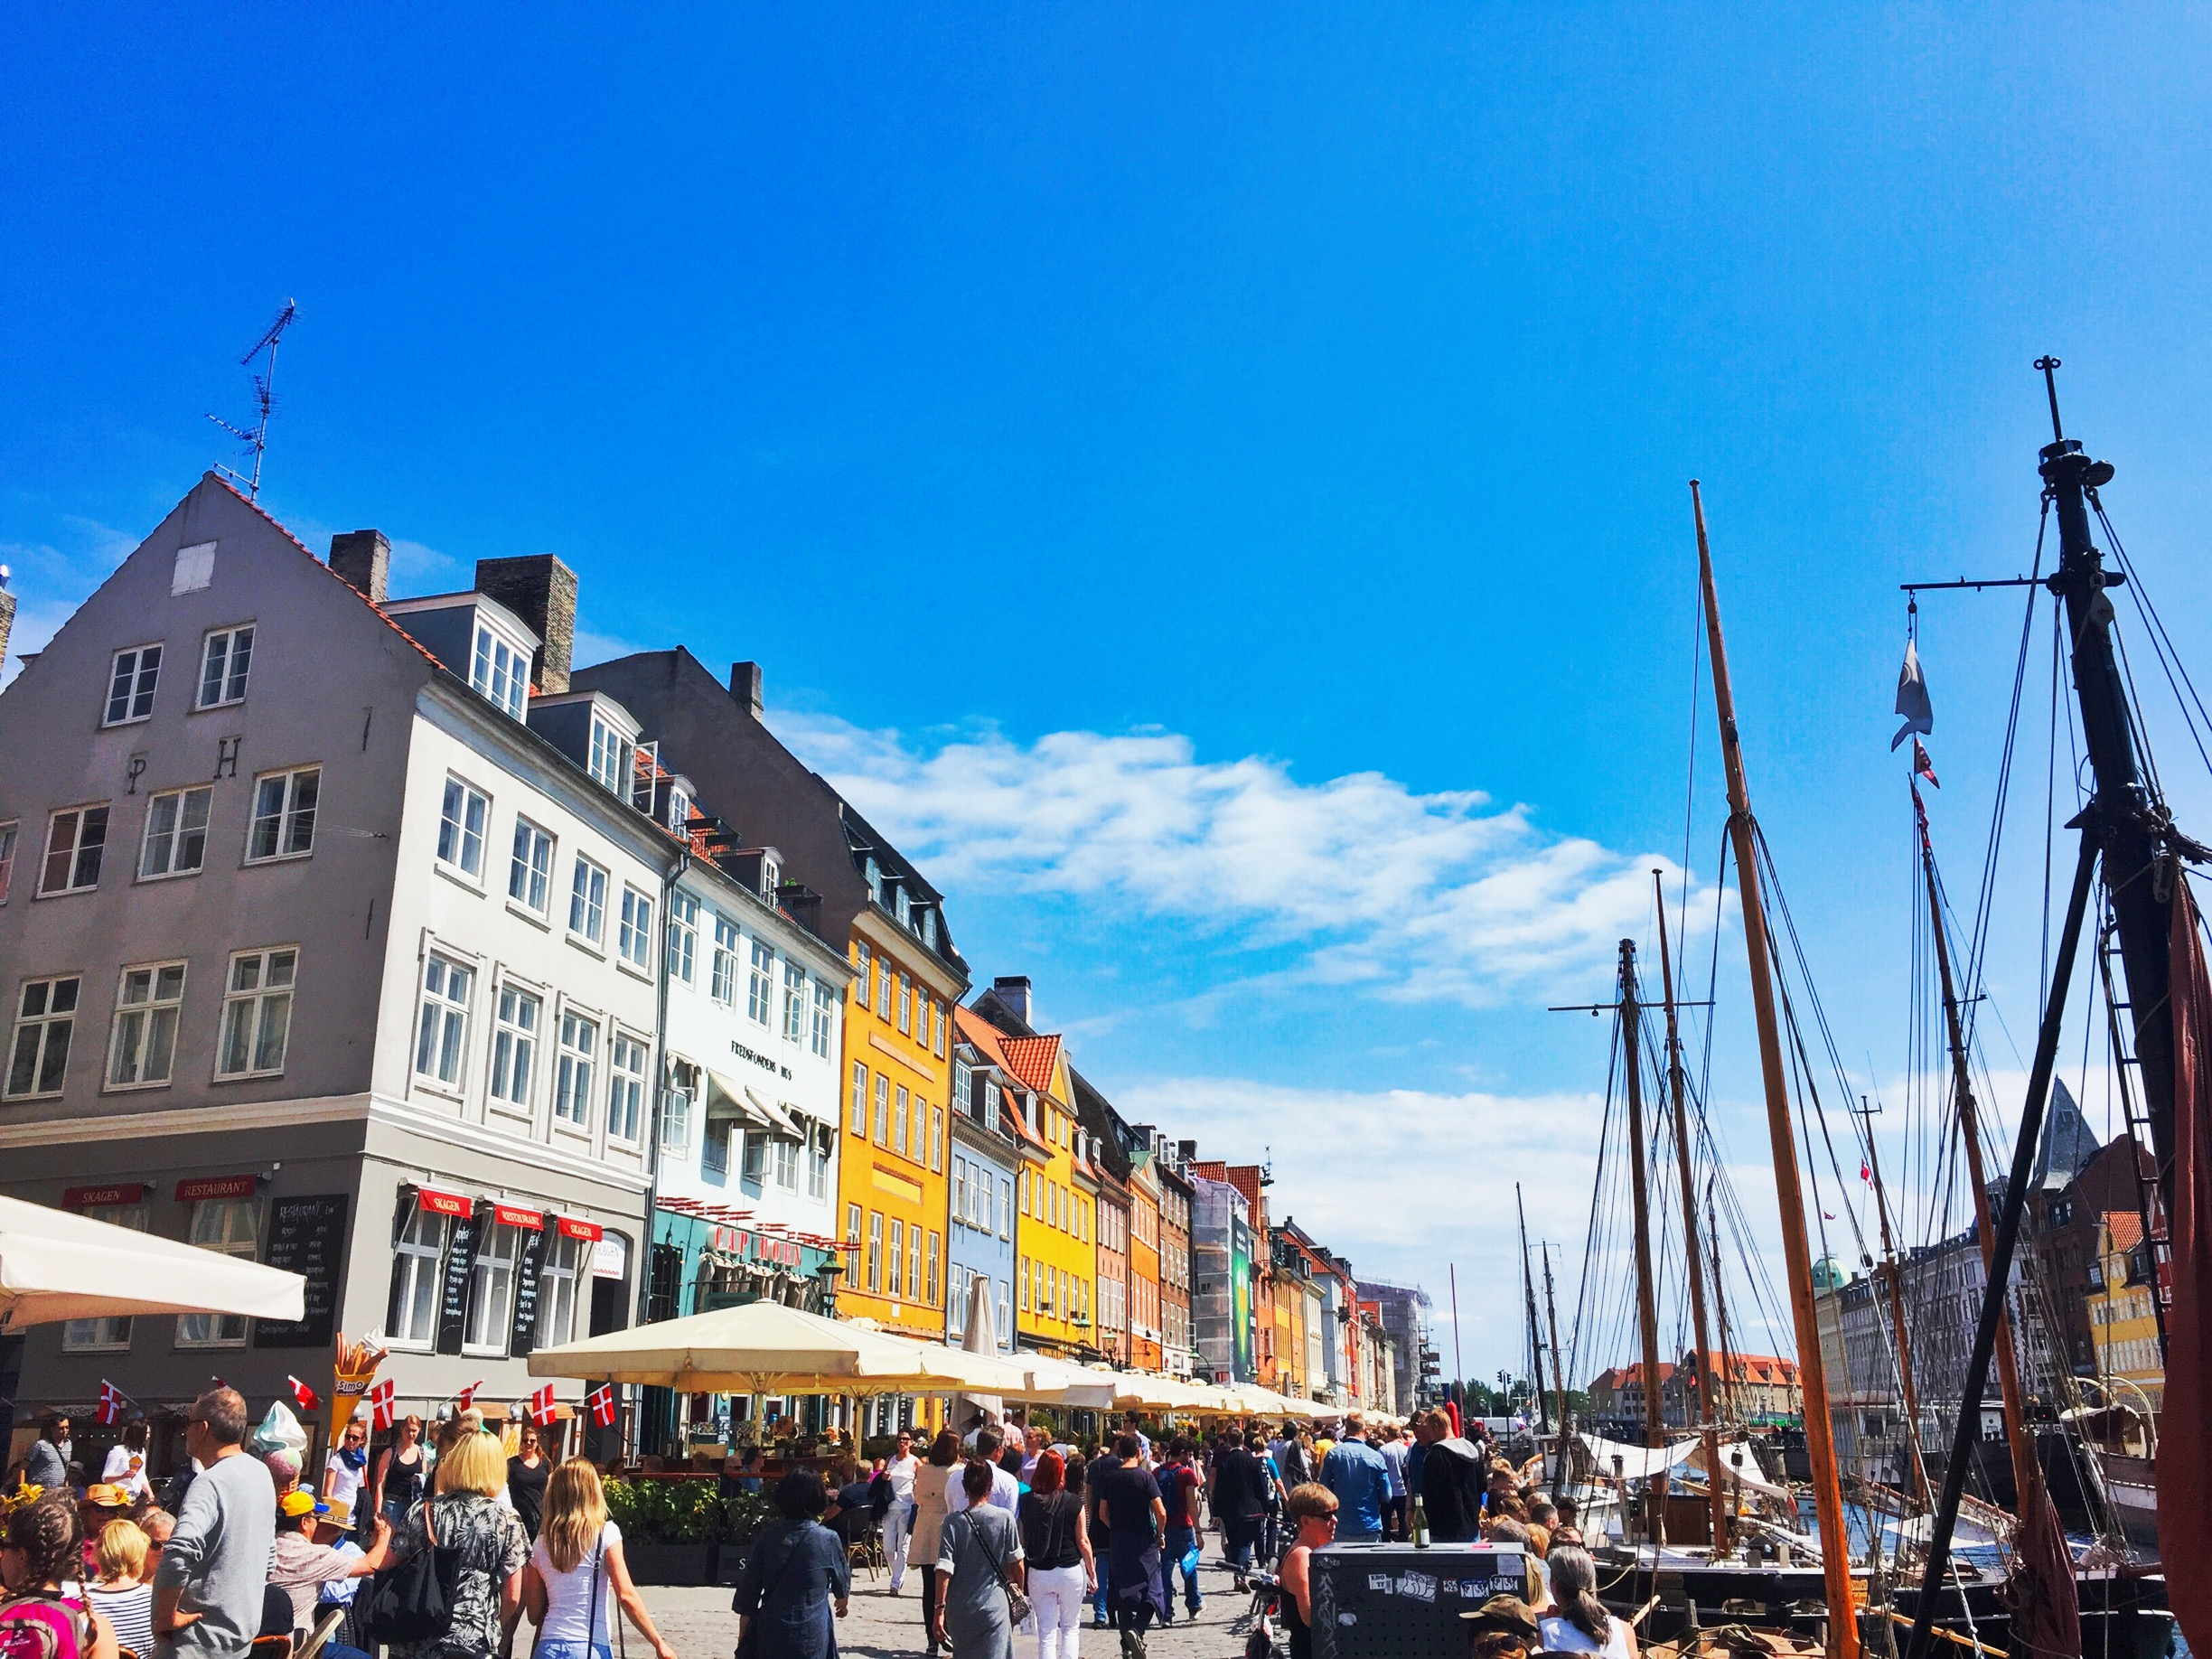 Picturesque Nyhavn. On a warm day, nothing beats sitting here with a Somersby or ice cream in hand.